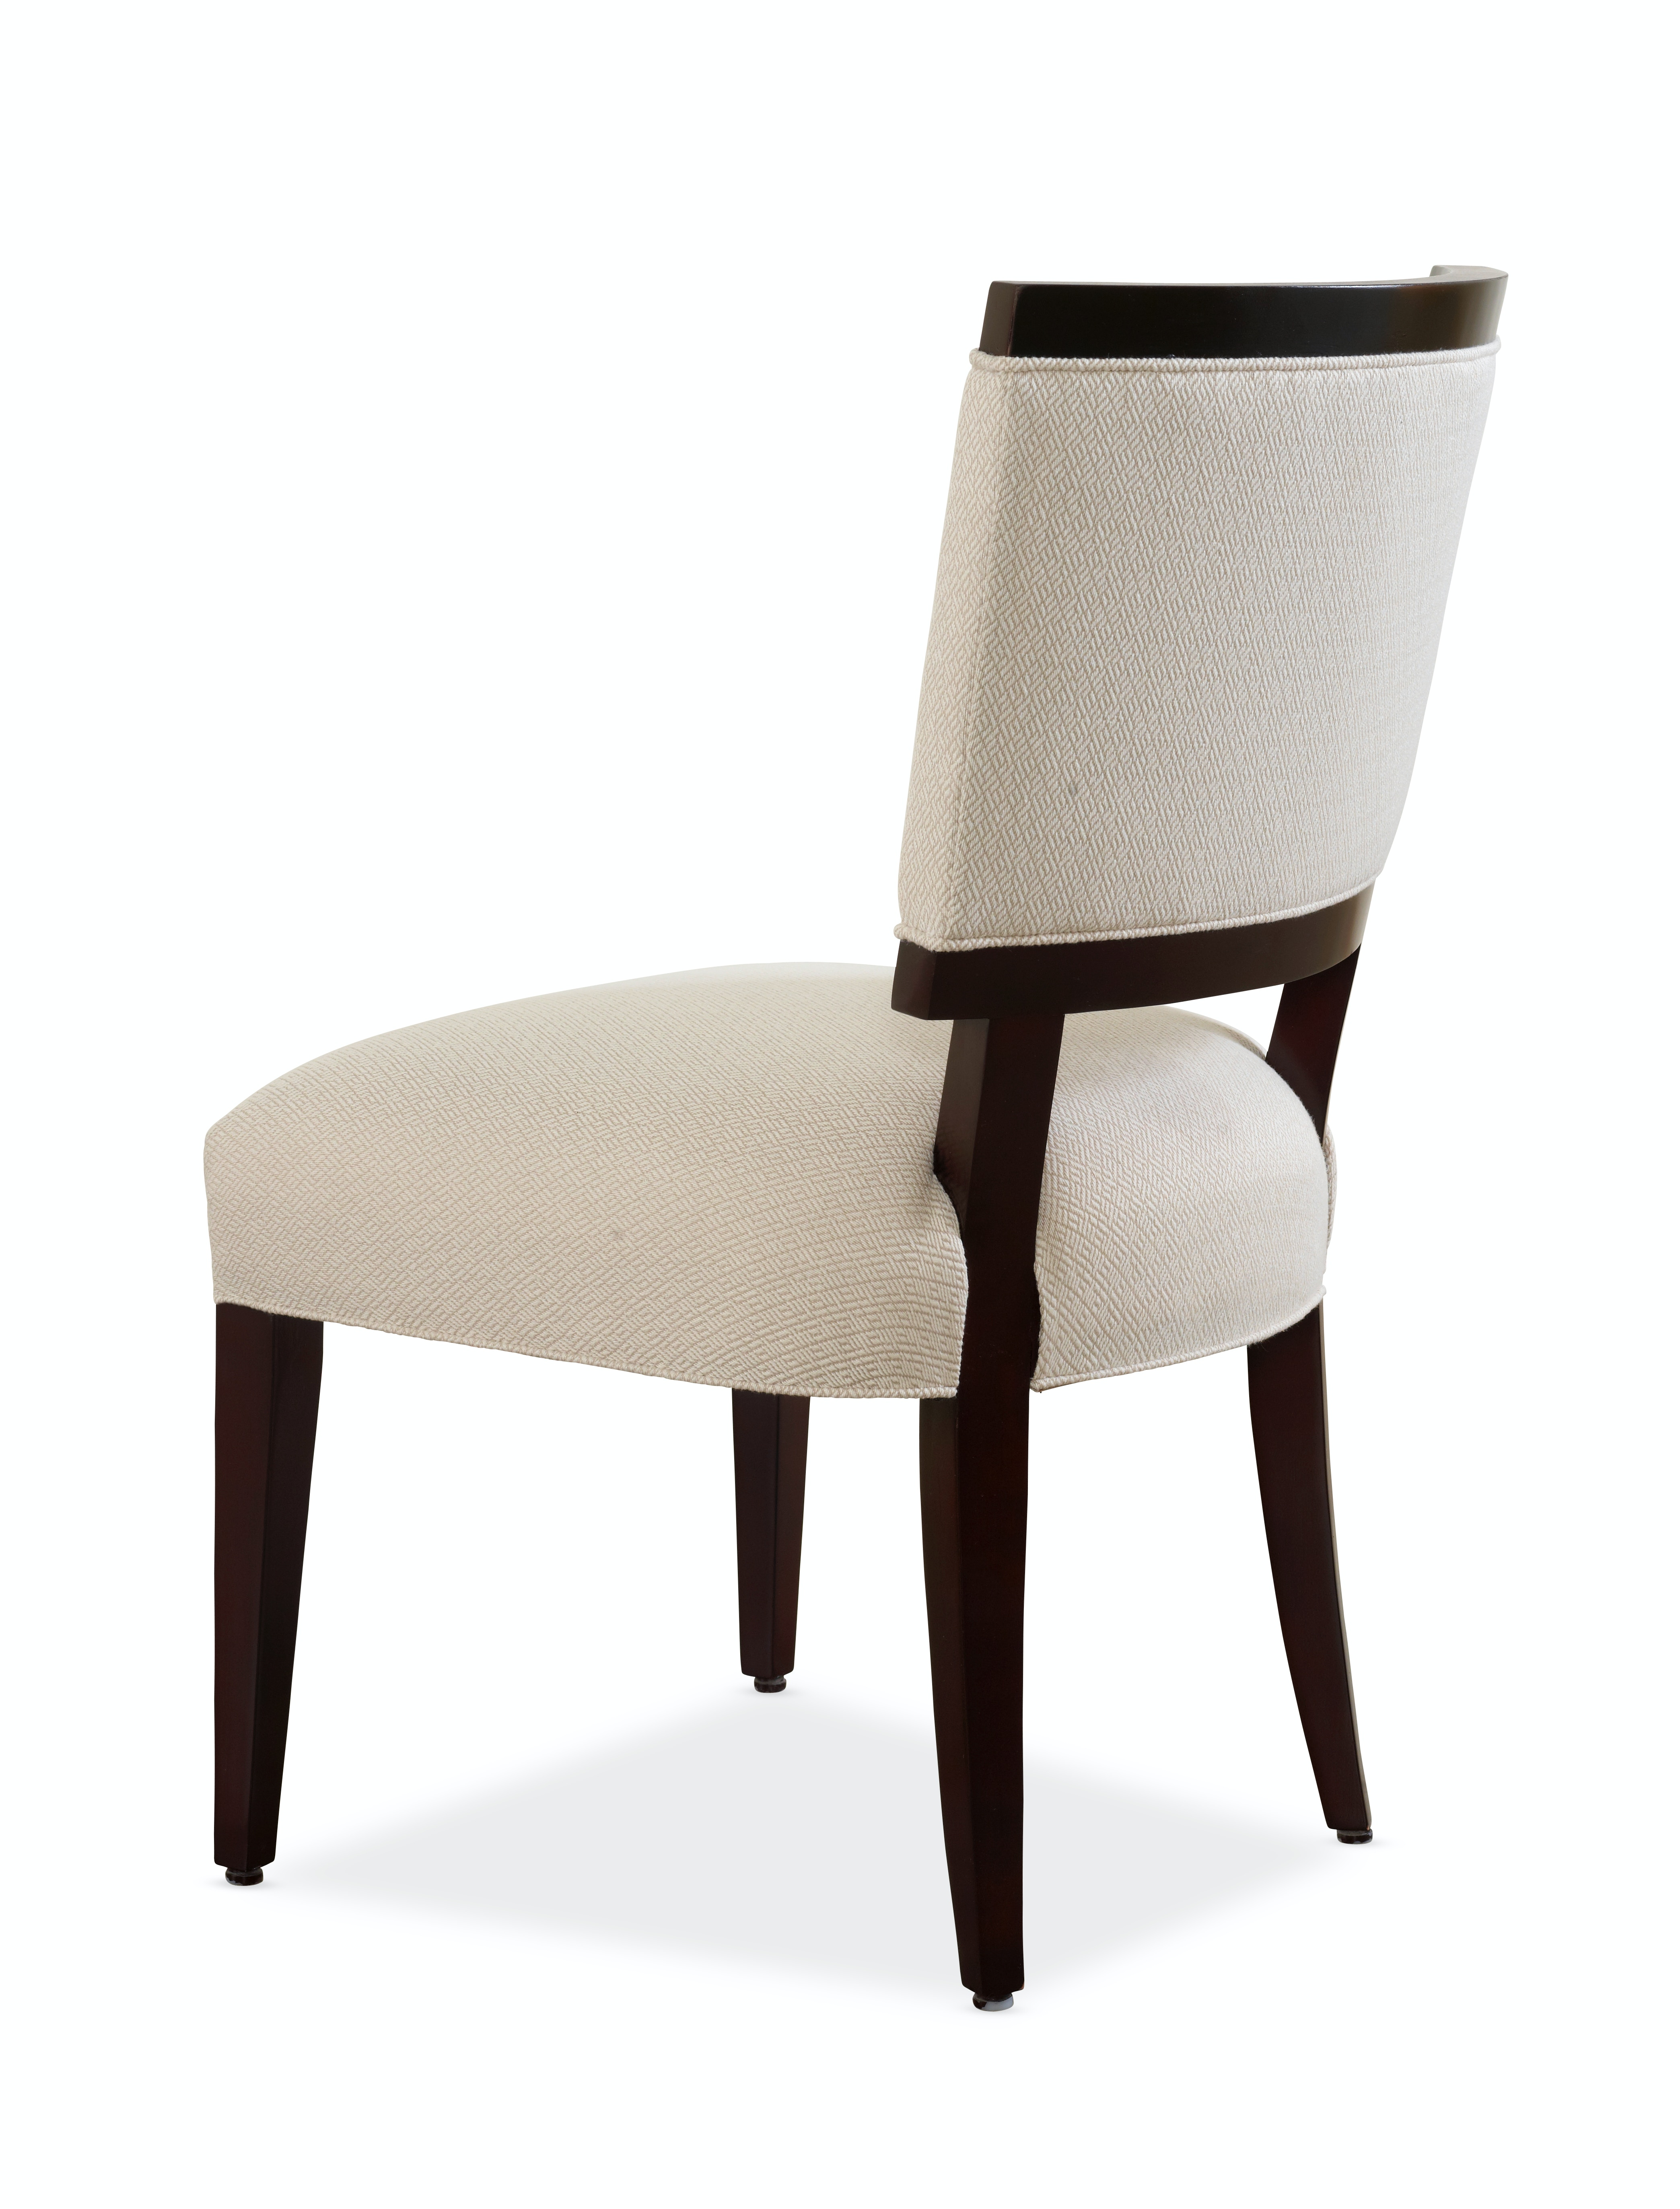 dining room chairs home goods frank lloyd wright chair designs designmaster bartlett side 01 664